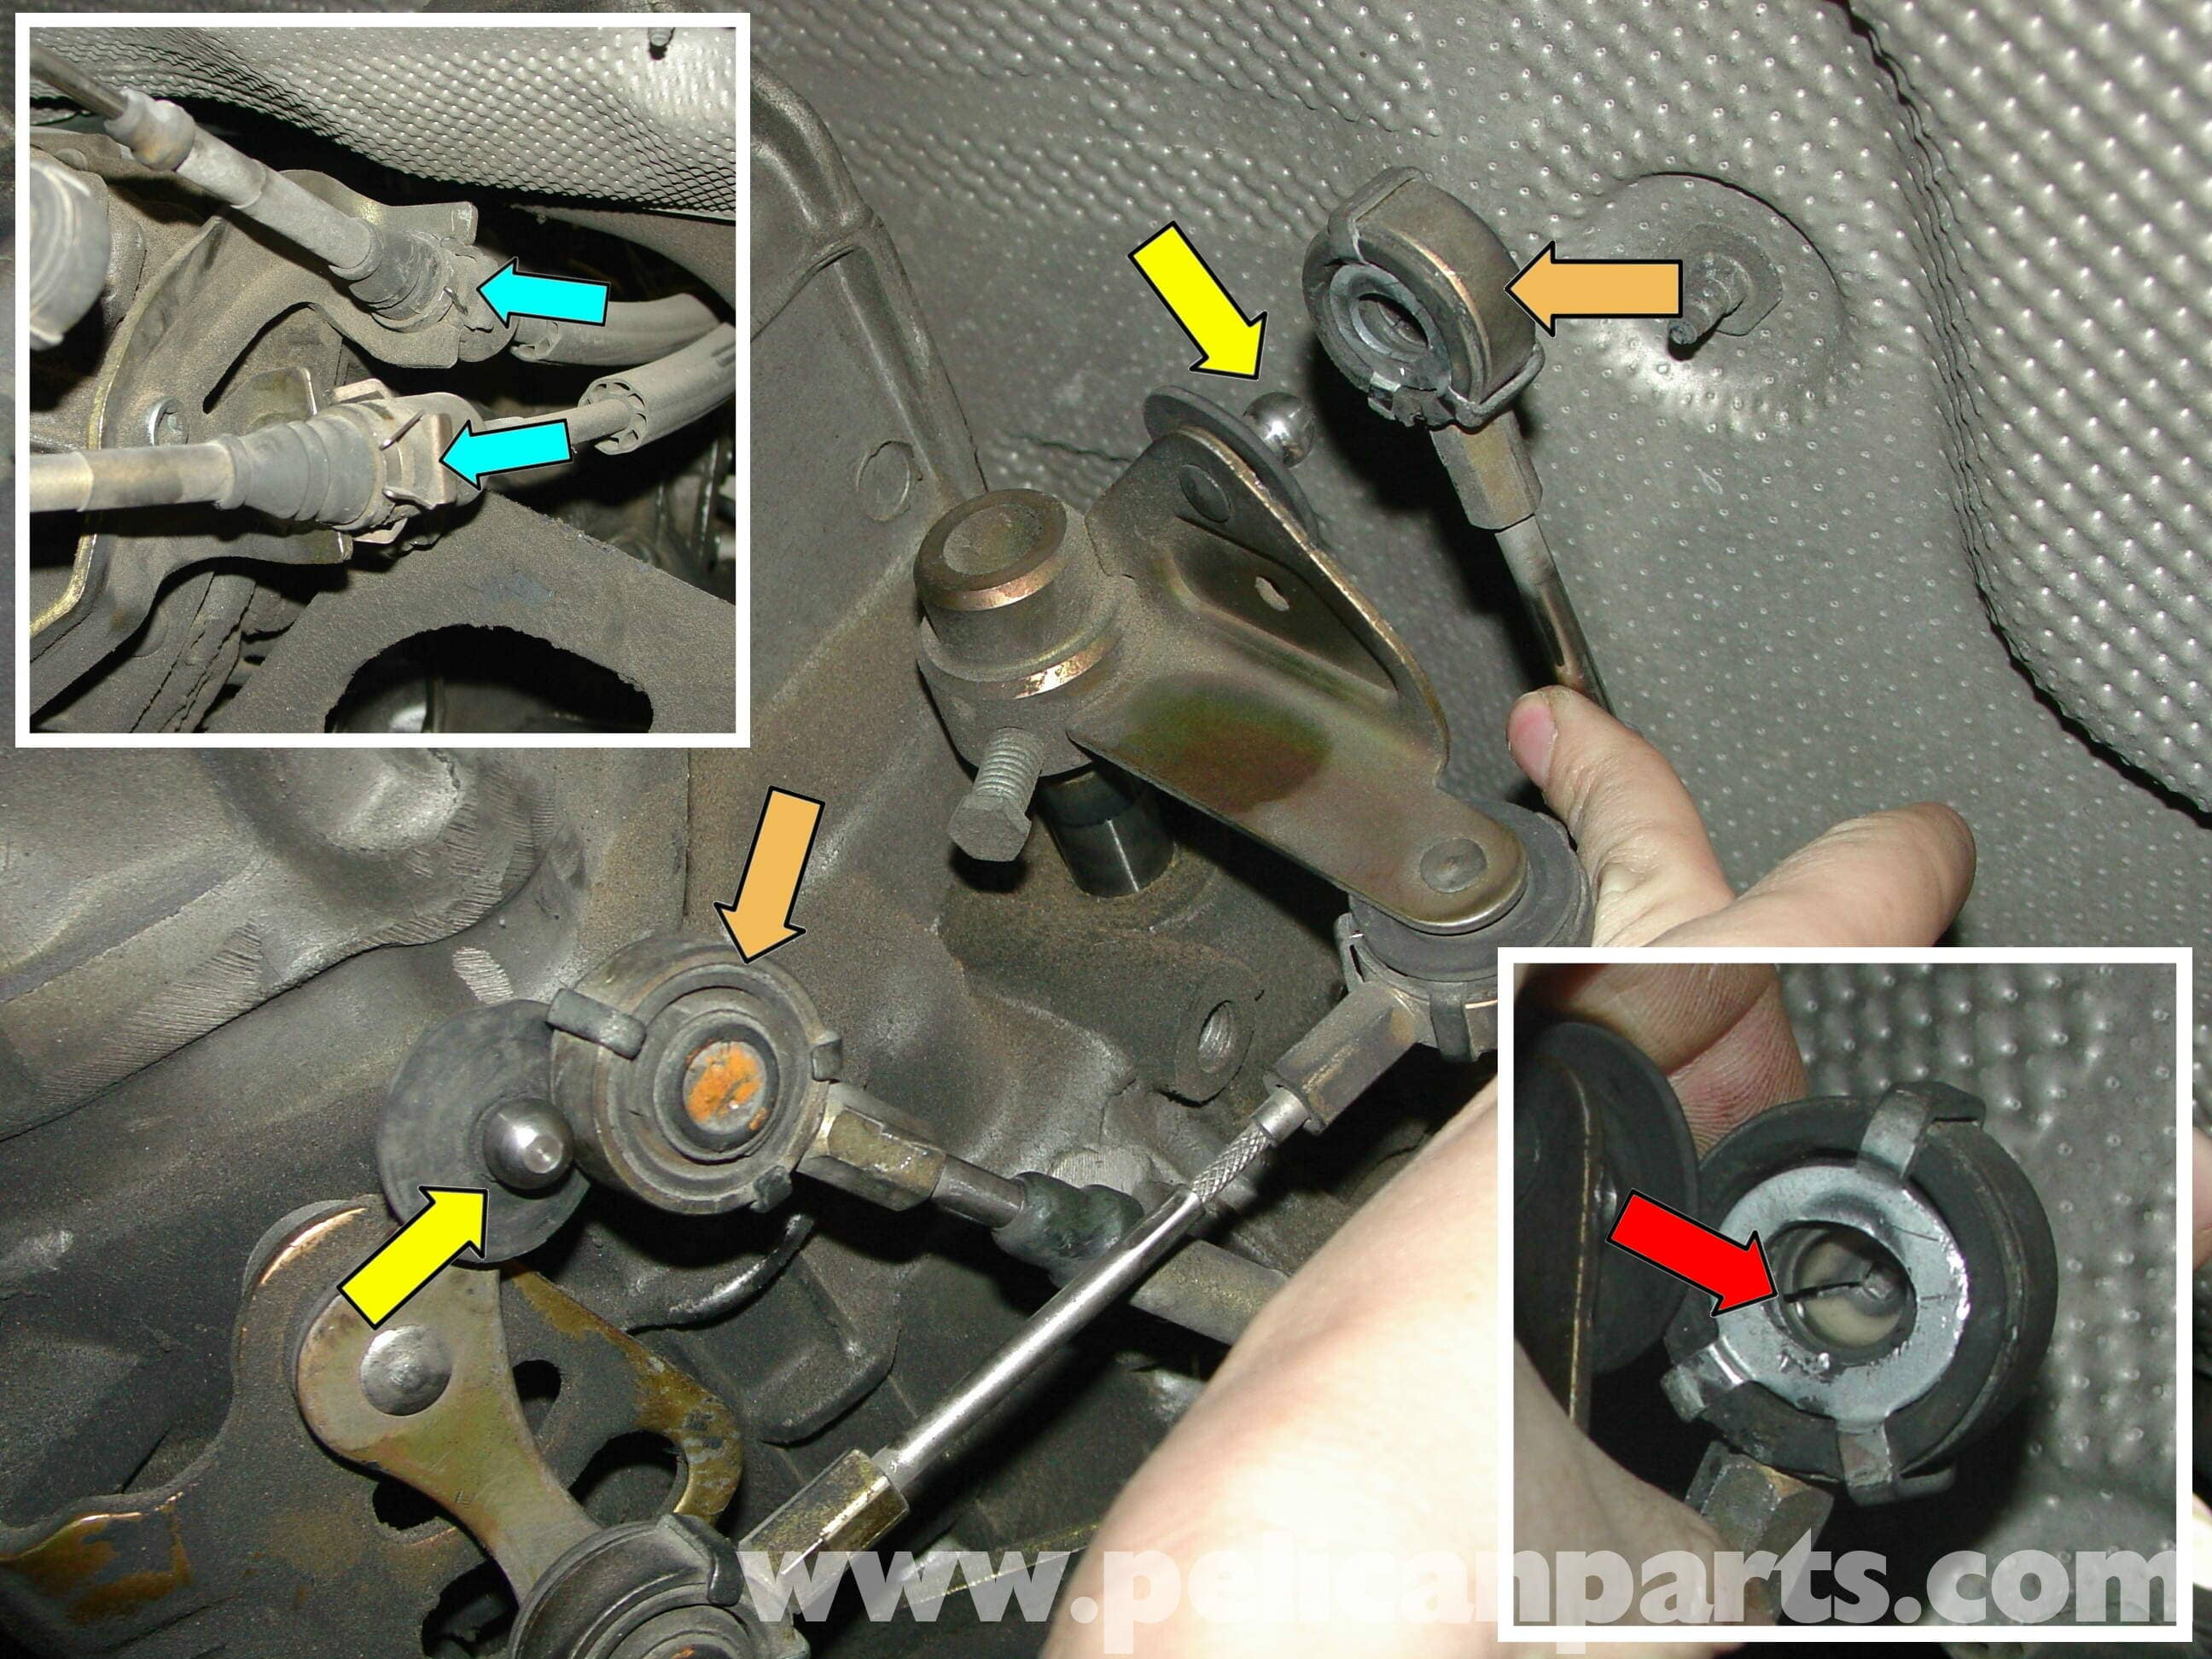 Porsche Boxster Transmission Removal 986 987 1997 08 Pelican Parts Technical Article